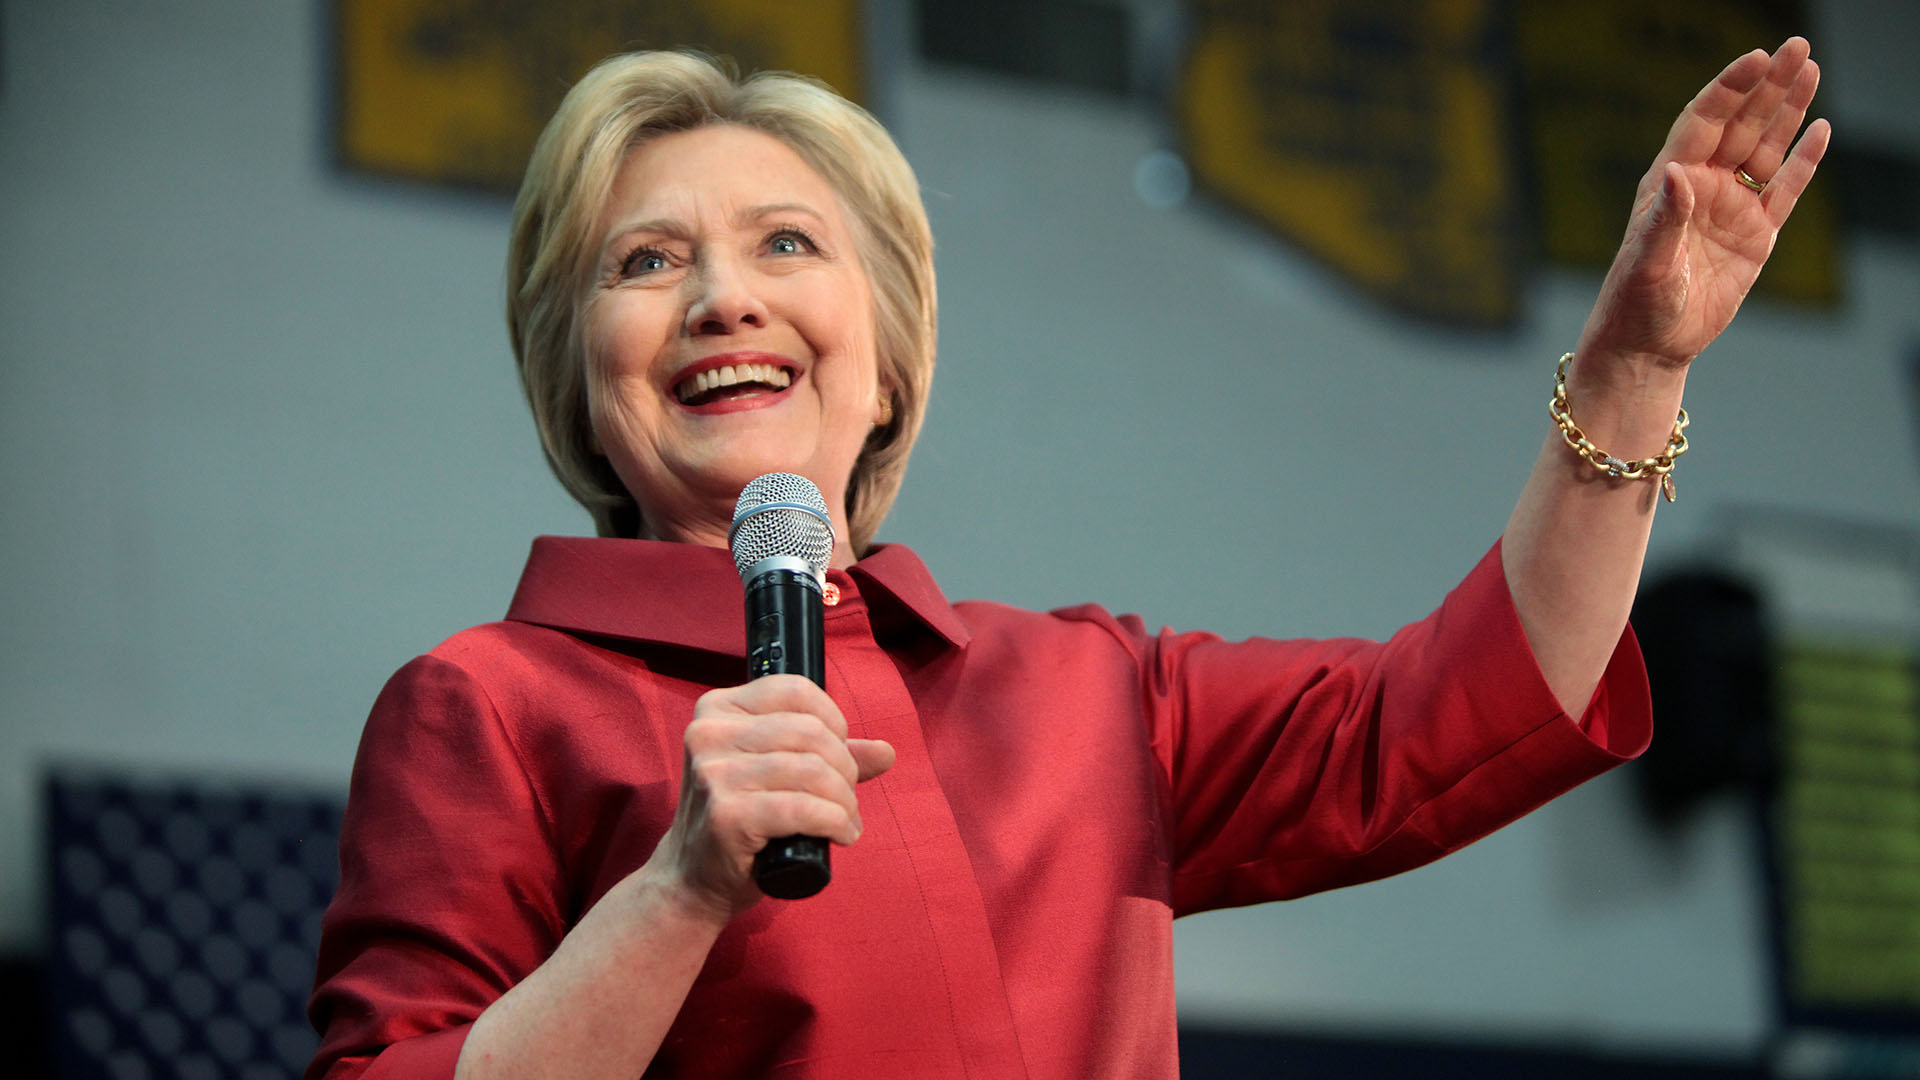 Clinton campaign halfway to $1 billion fundraising goal